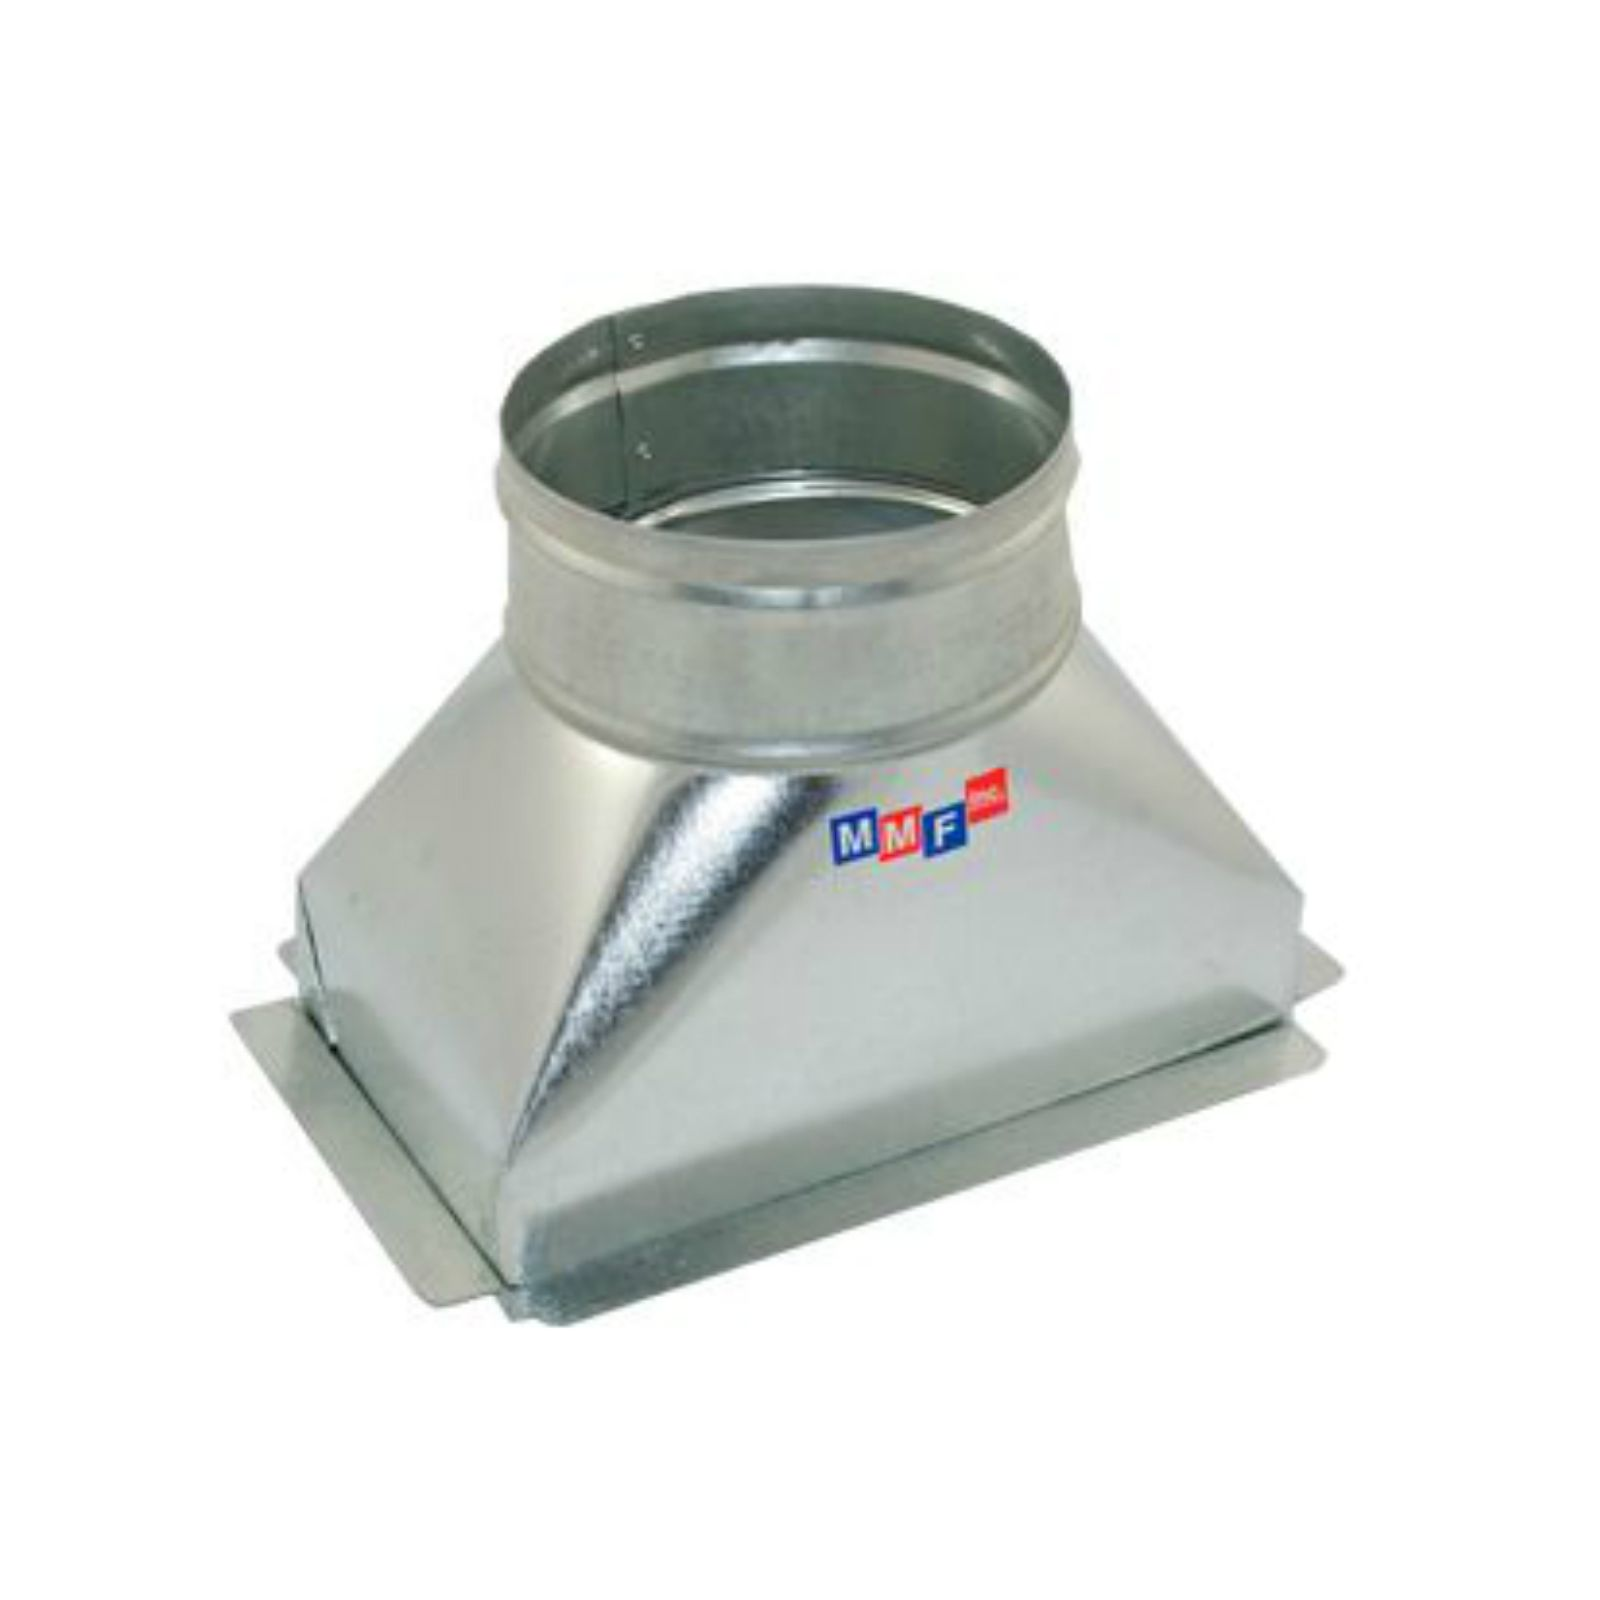 "Modular Metal BTSFG080406E - Sealed Floor Box - 30 Gauge 08"" X 04"" X 06"" Round - With Plaster Ground Flange & Ears"